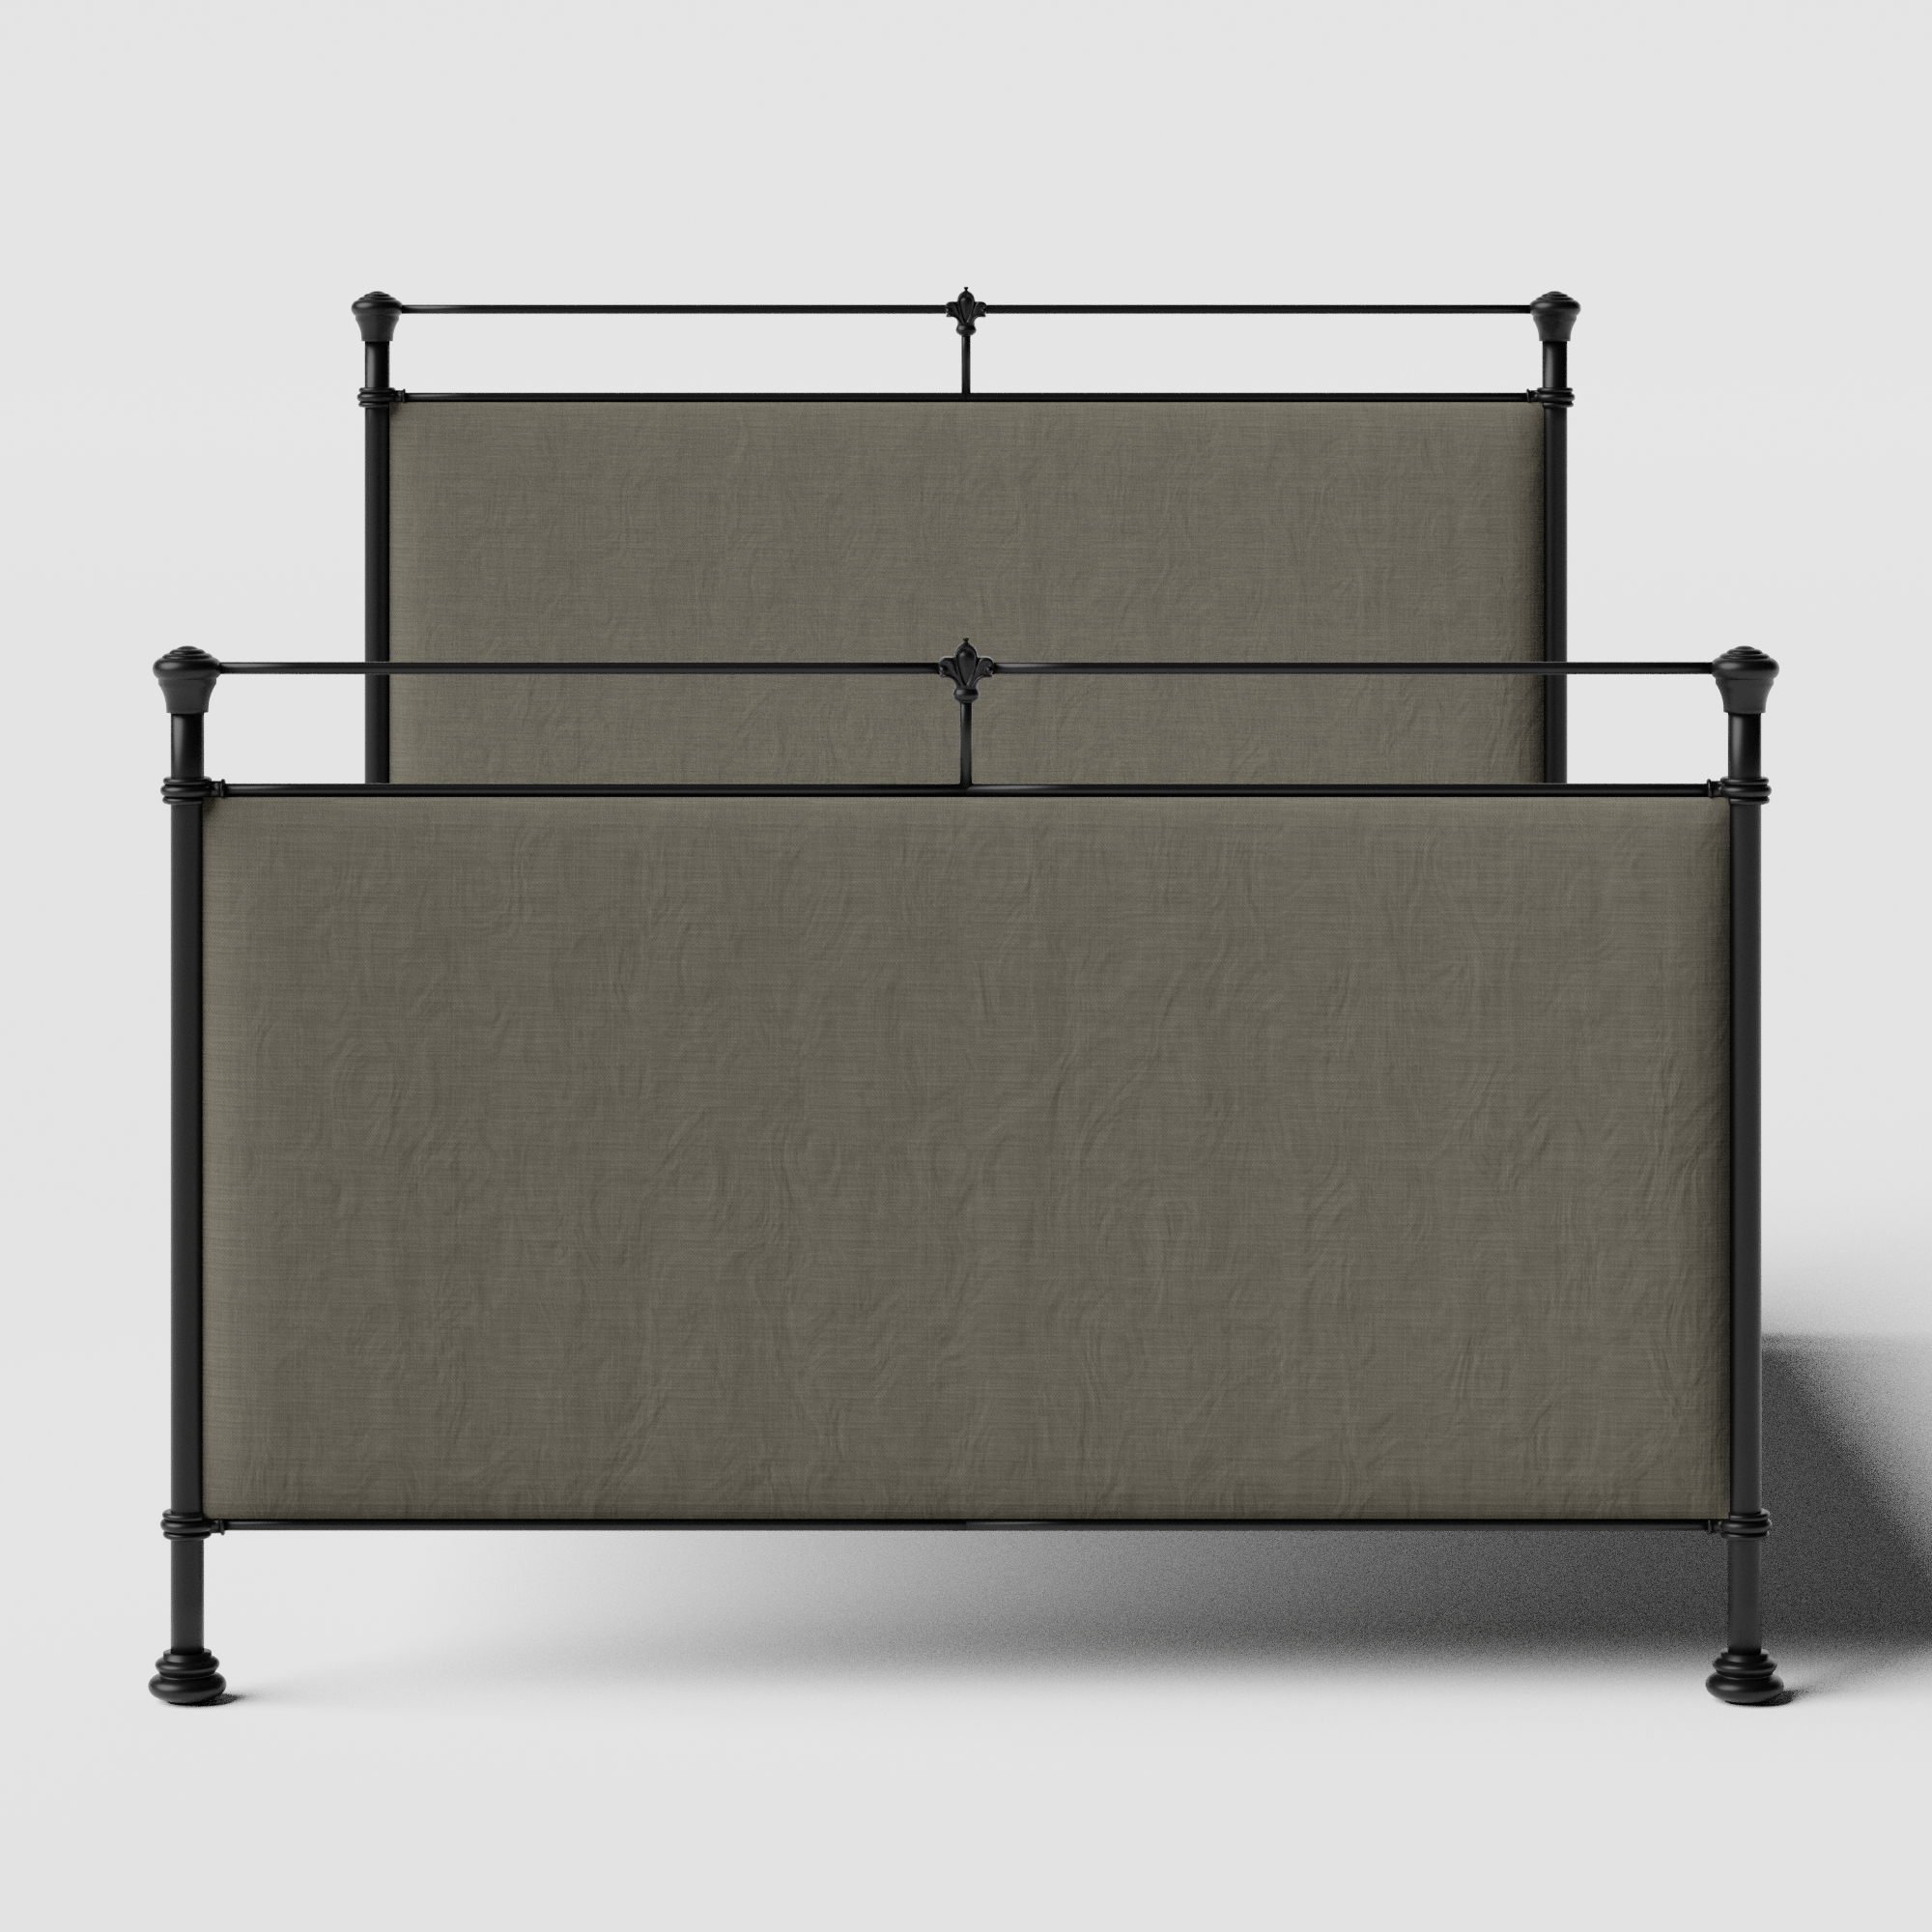 Lille iron/metal upholstered bed in black with grey fabric